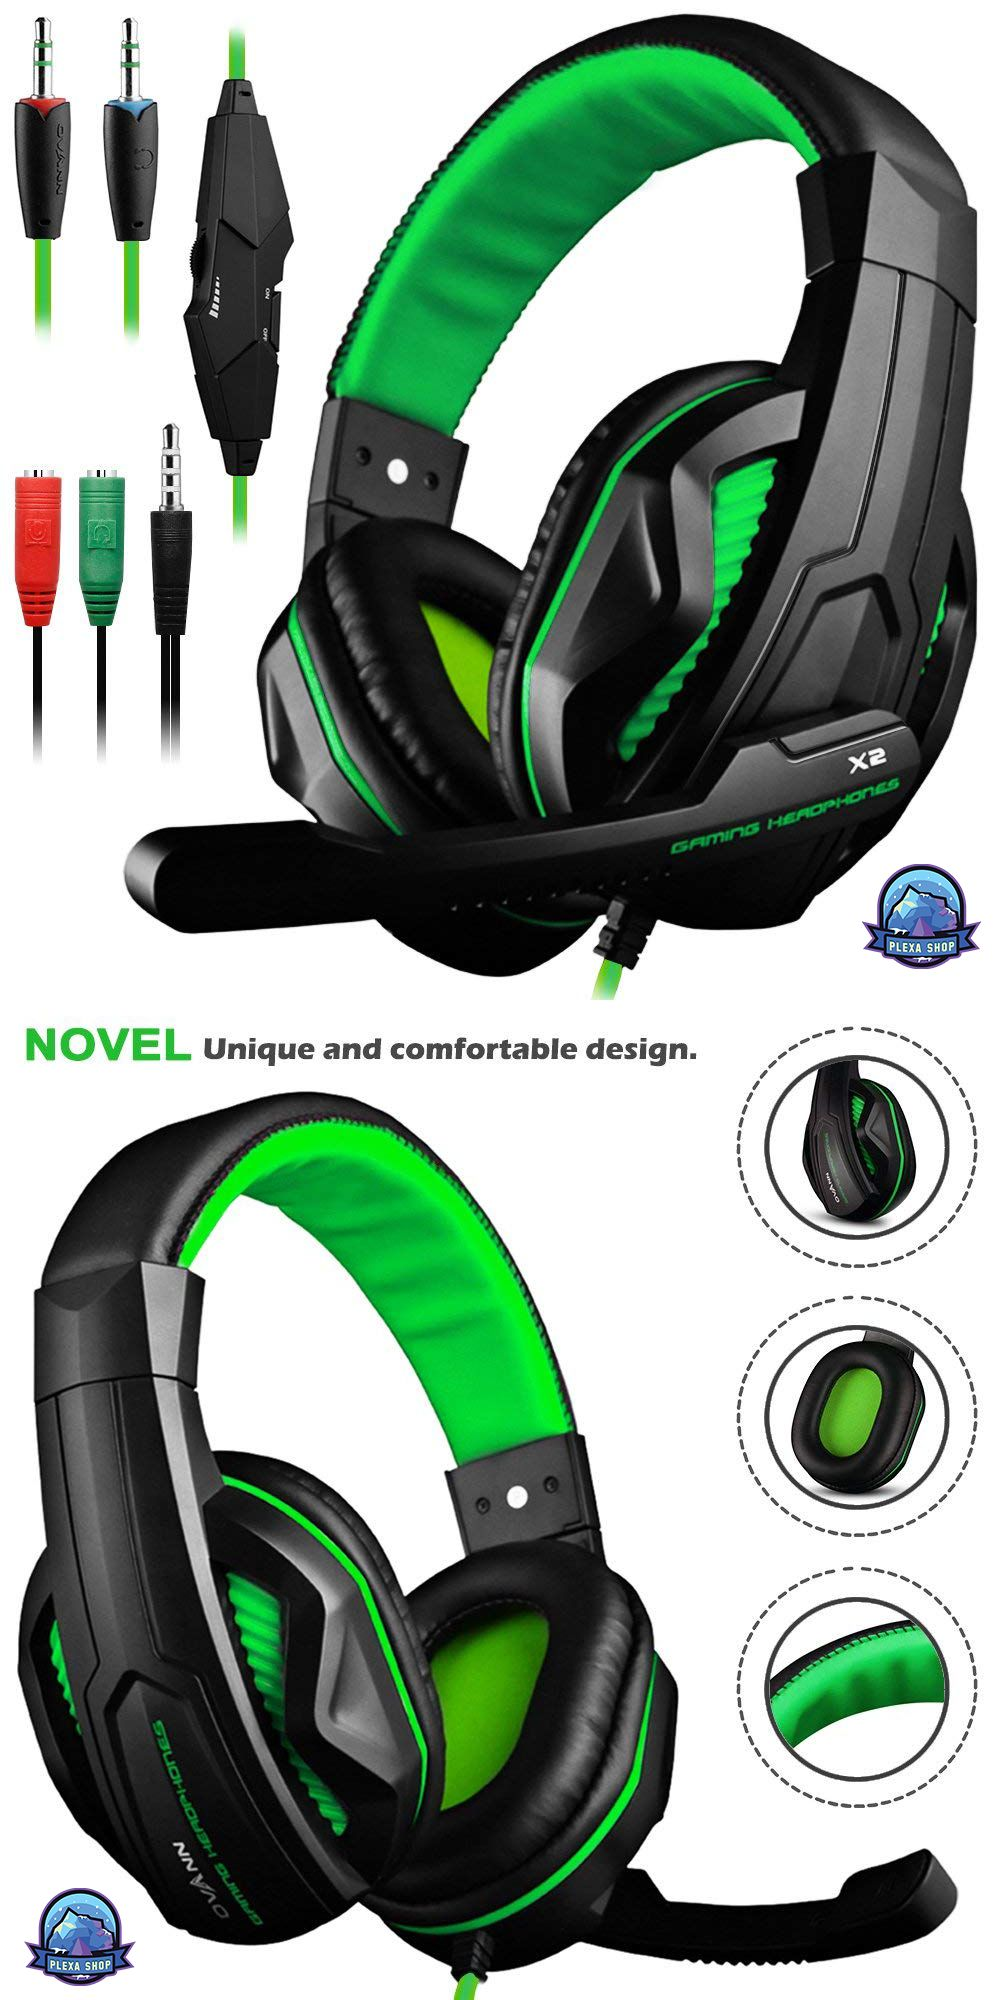 Headsets 171821: Fortnite Pro Headset With Mic And Volume Control